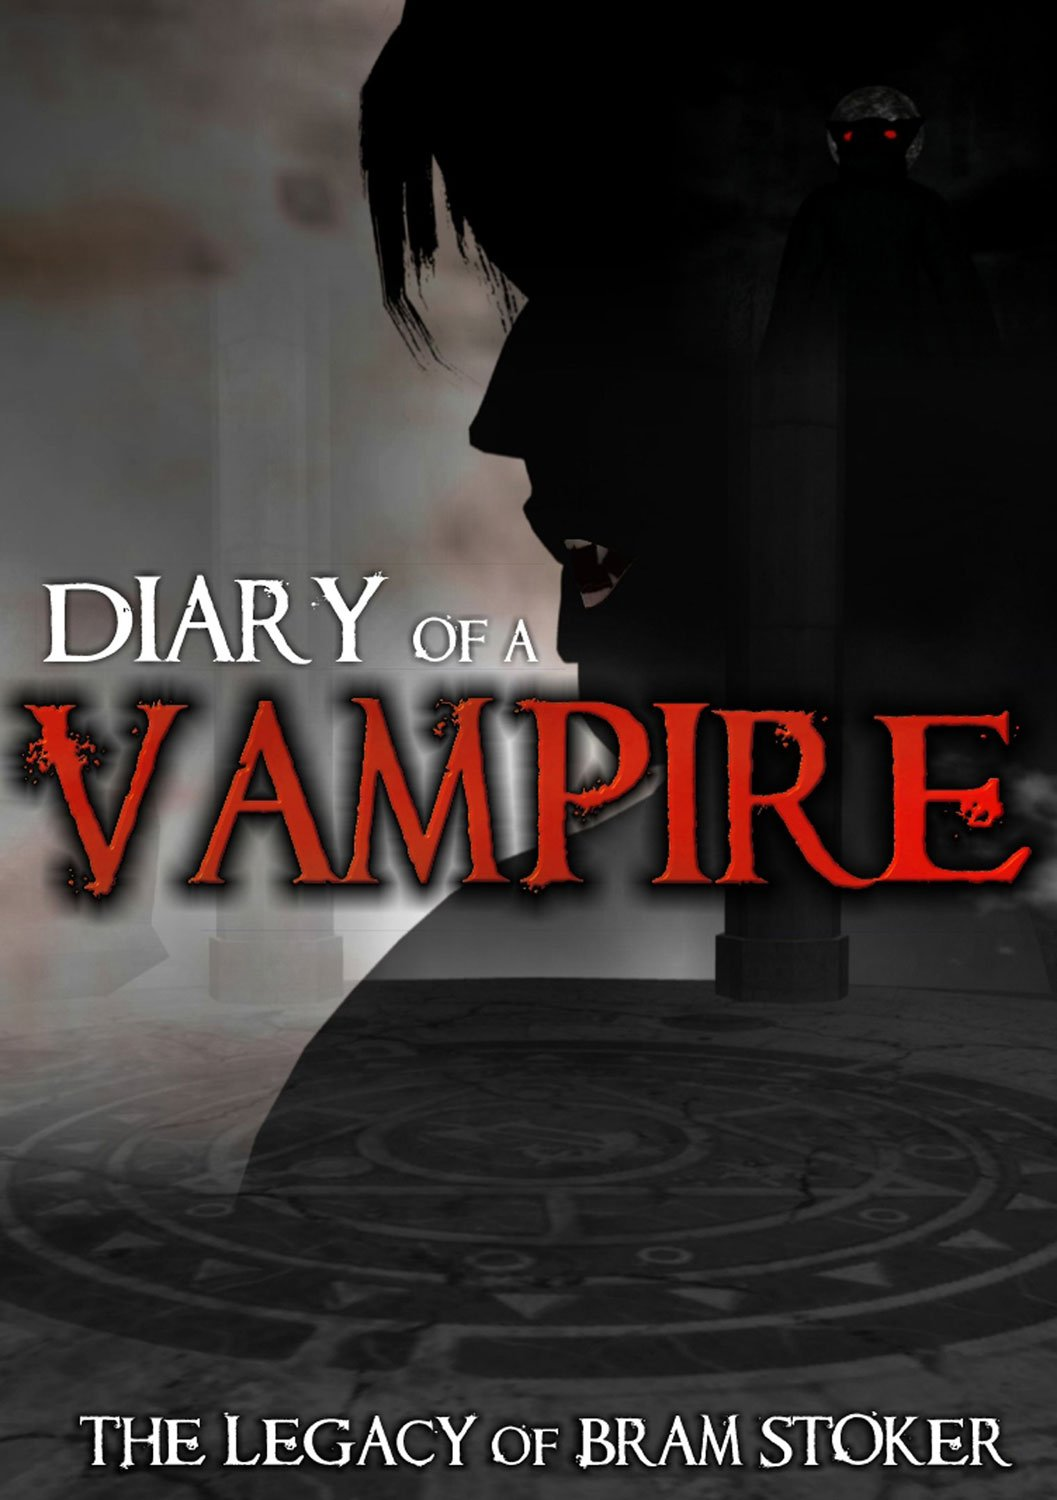 DVD : VARIOUS ARTISTS - Diary Of A Vampire: The Legacy Of Bram Stoker (DVD)